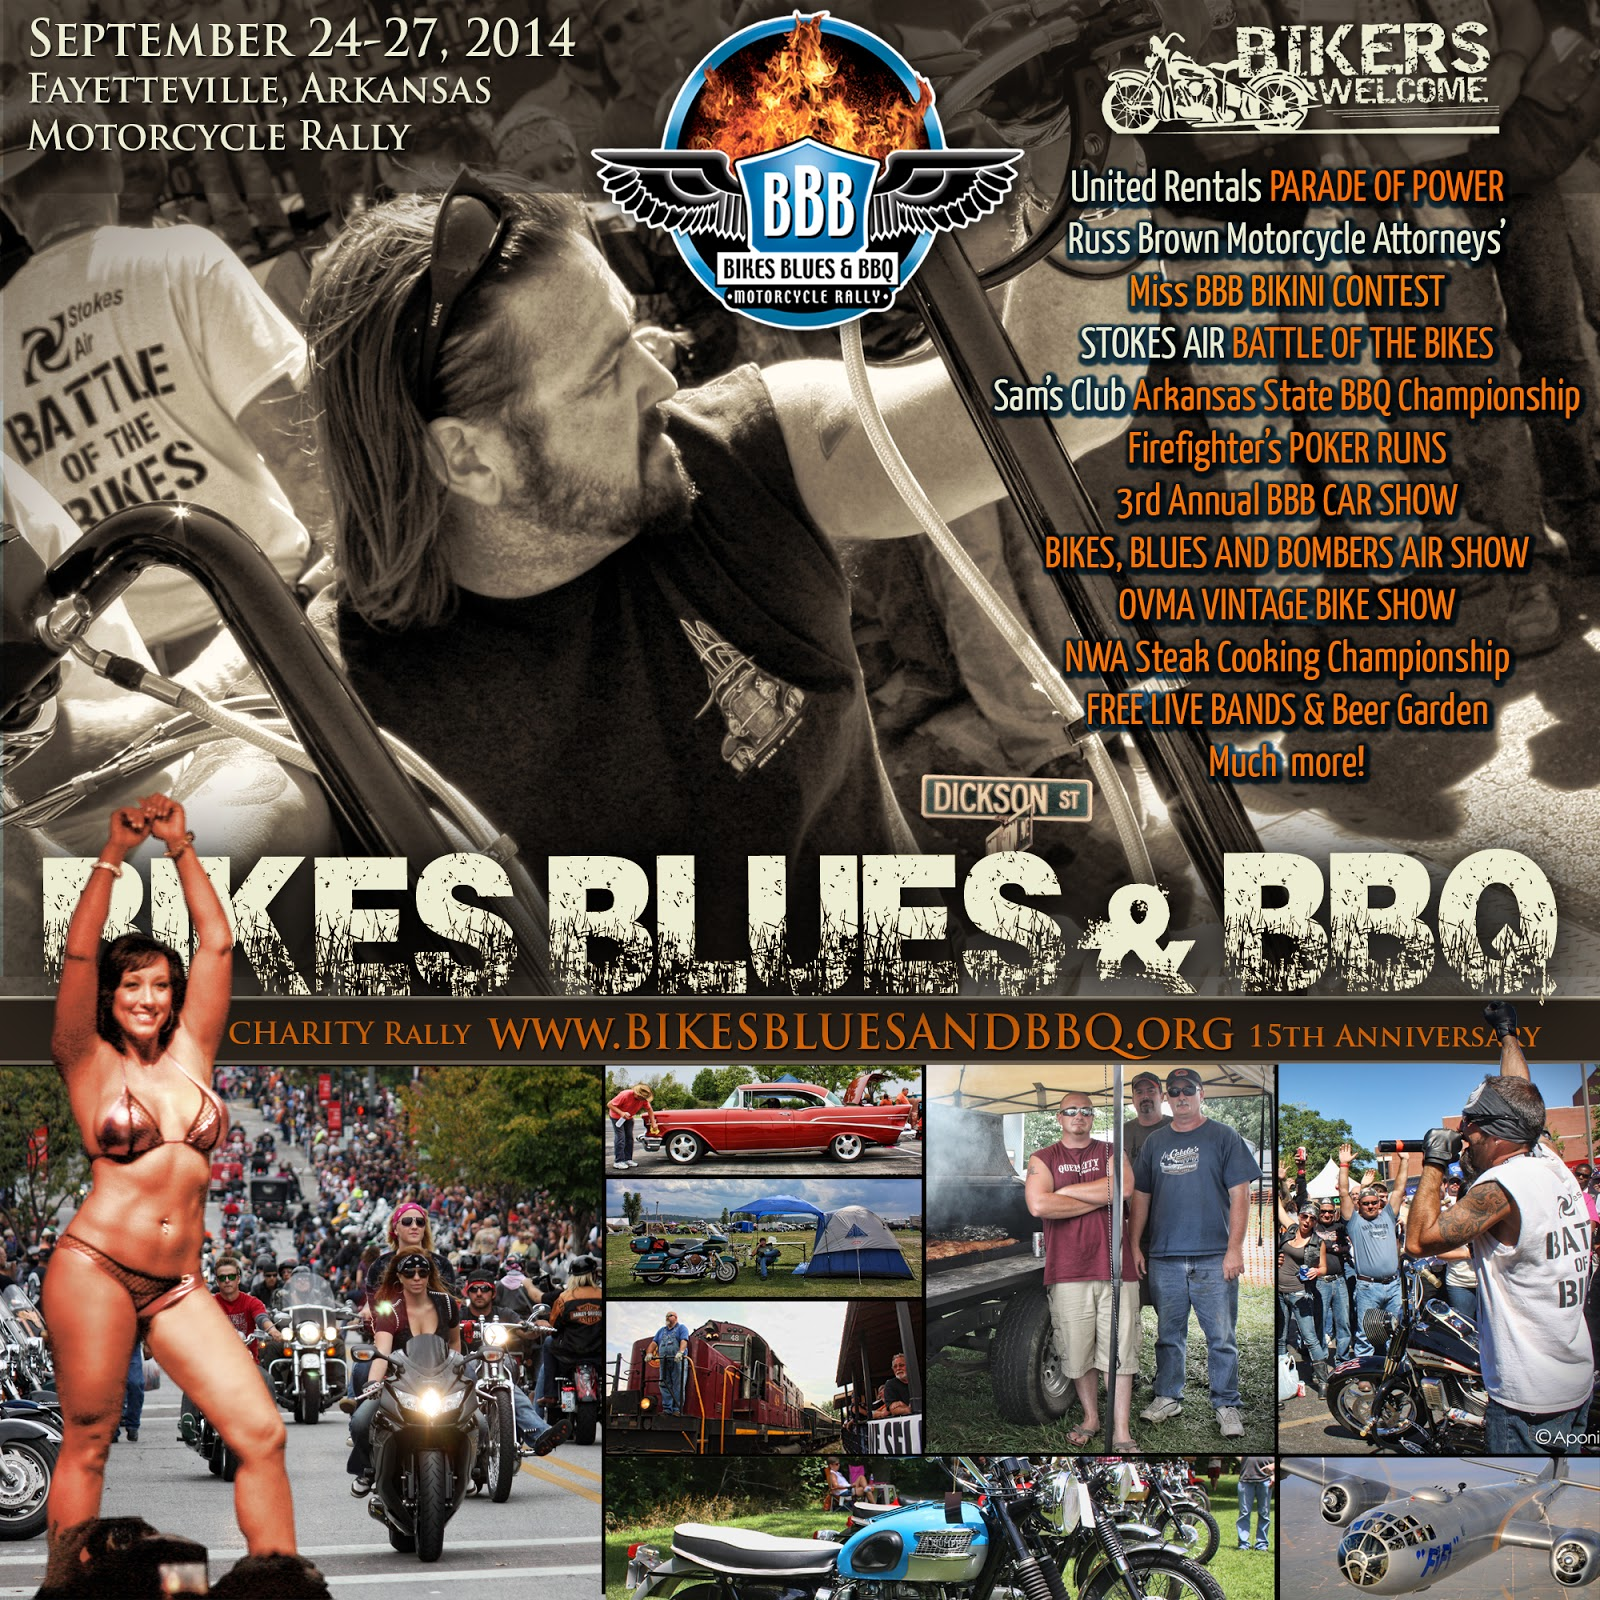 Bikes Blues And Bbq Schedule Bikes Blues and BBQ Events